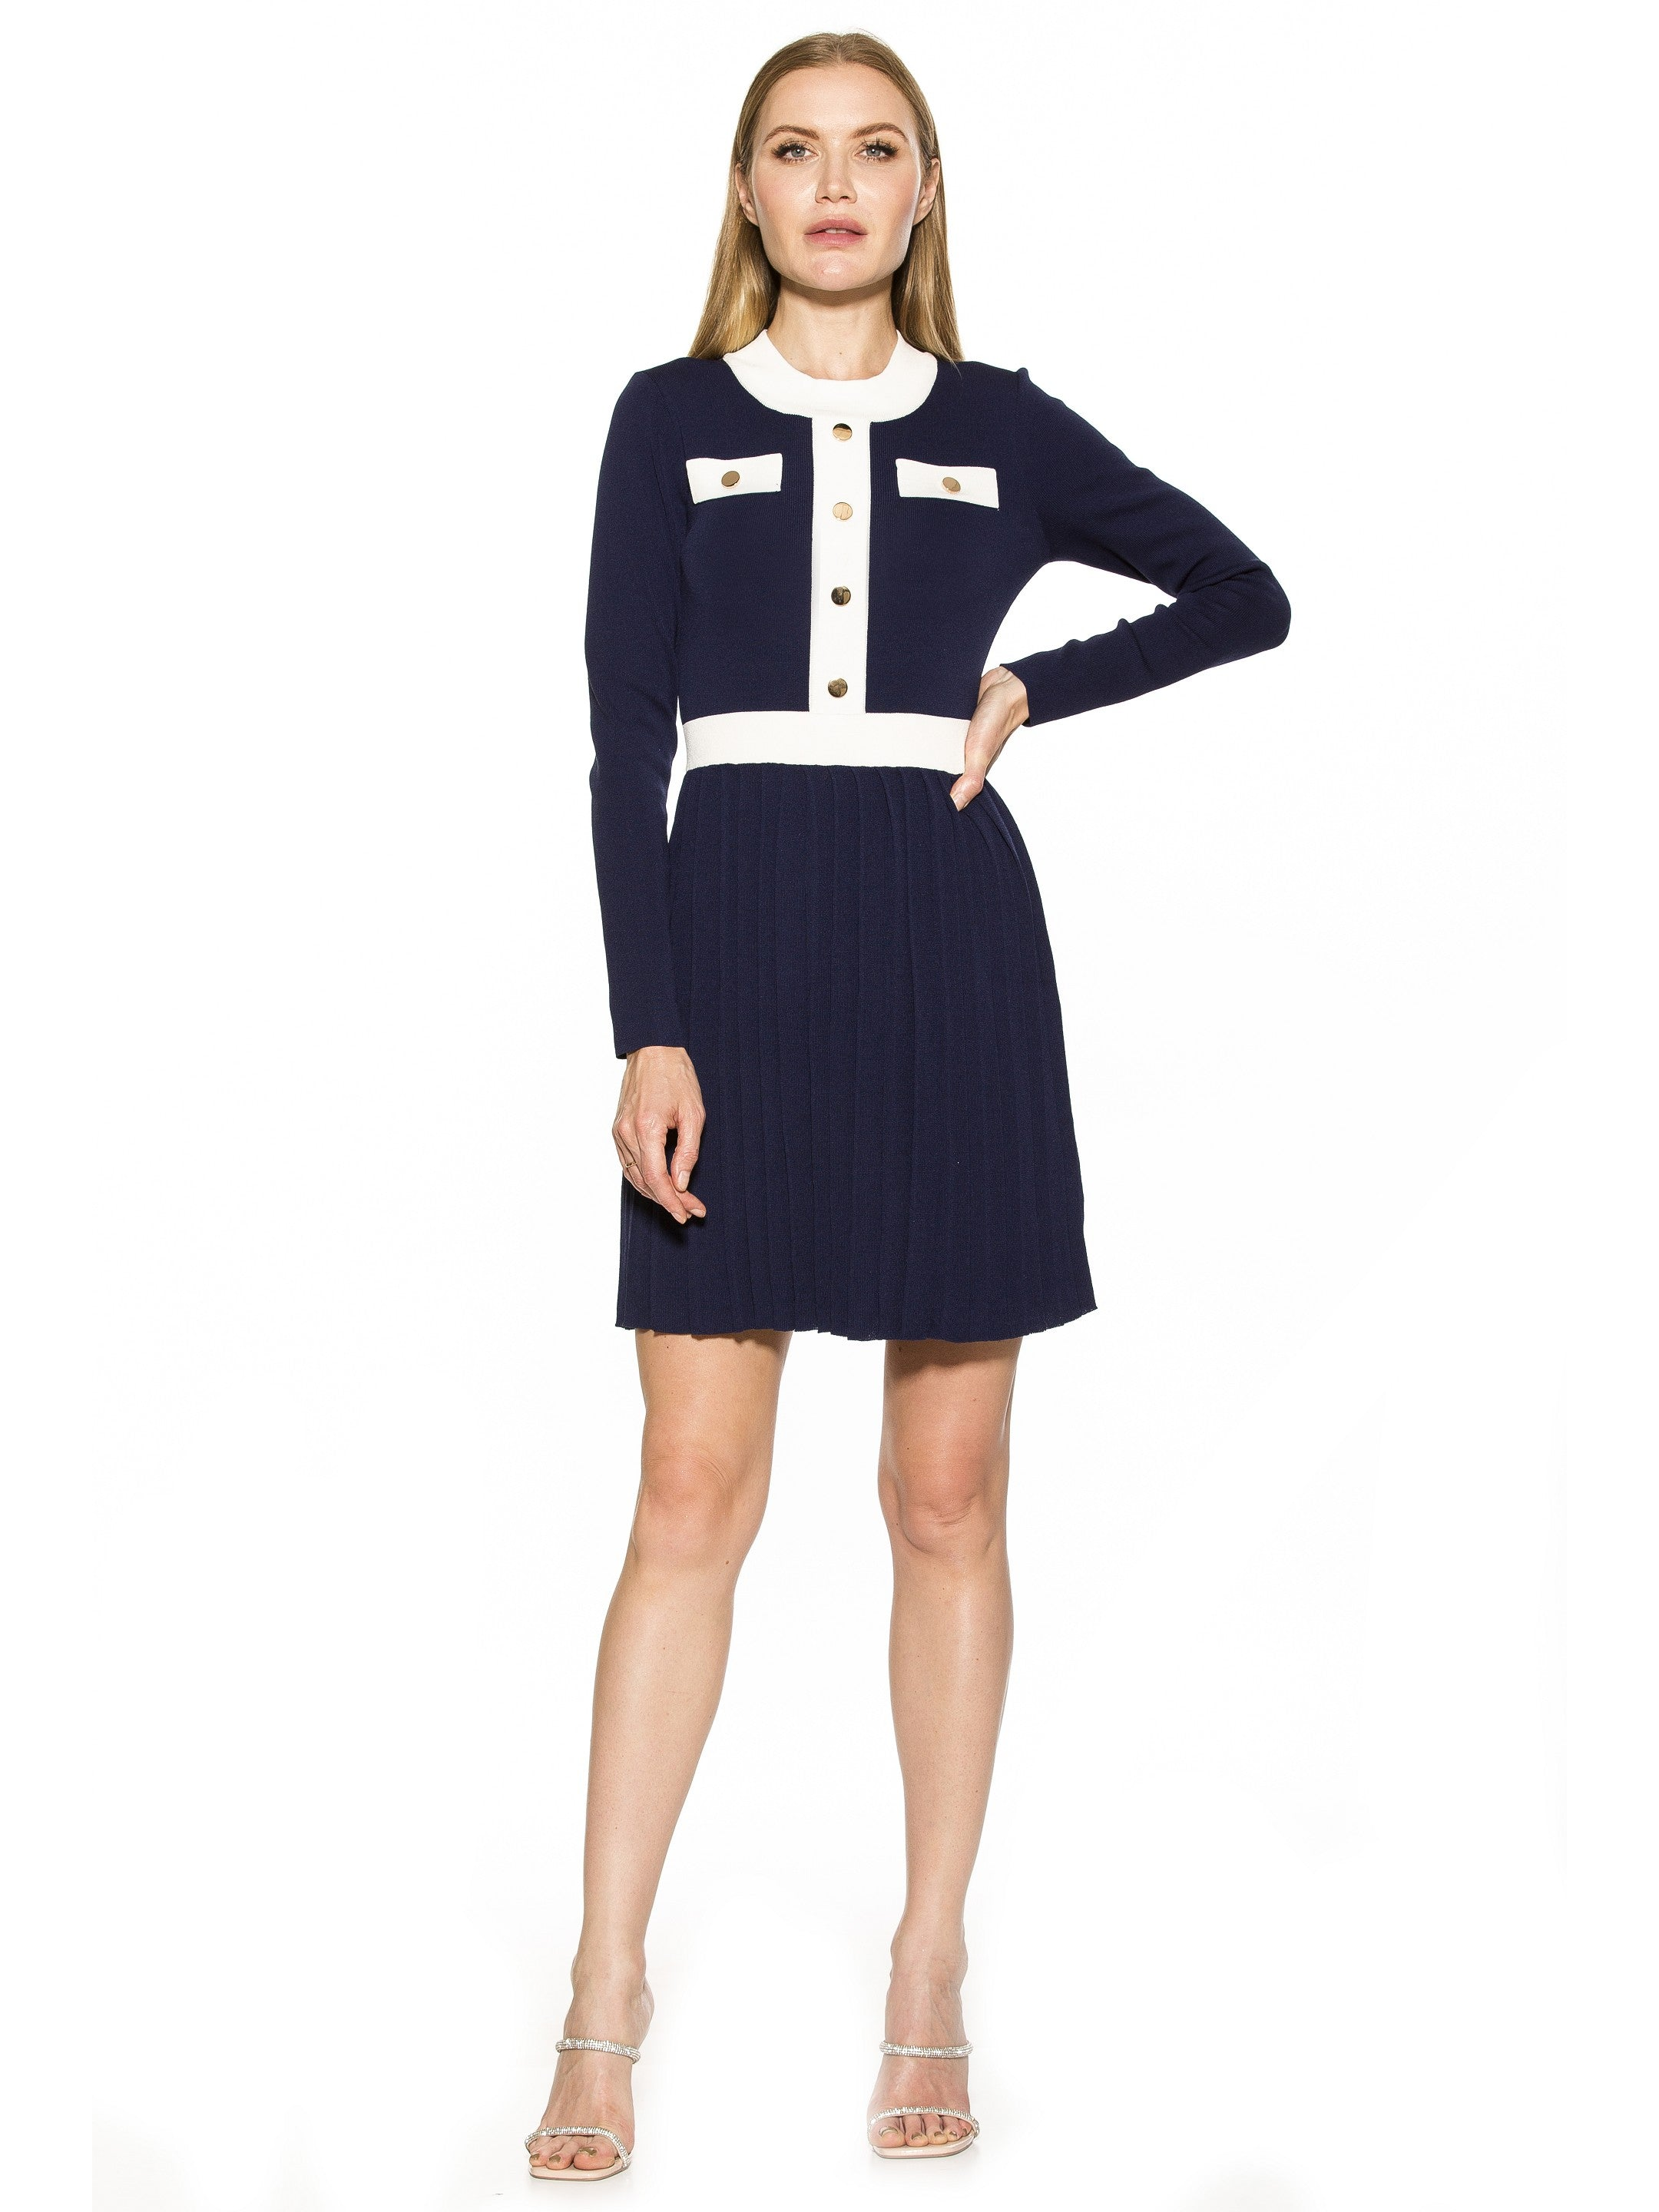 Simona Knit Dress